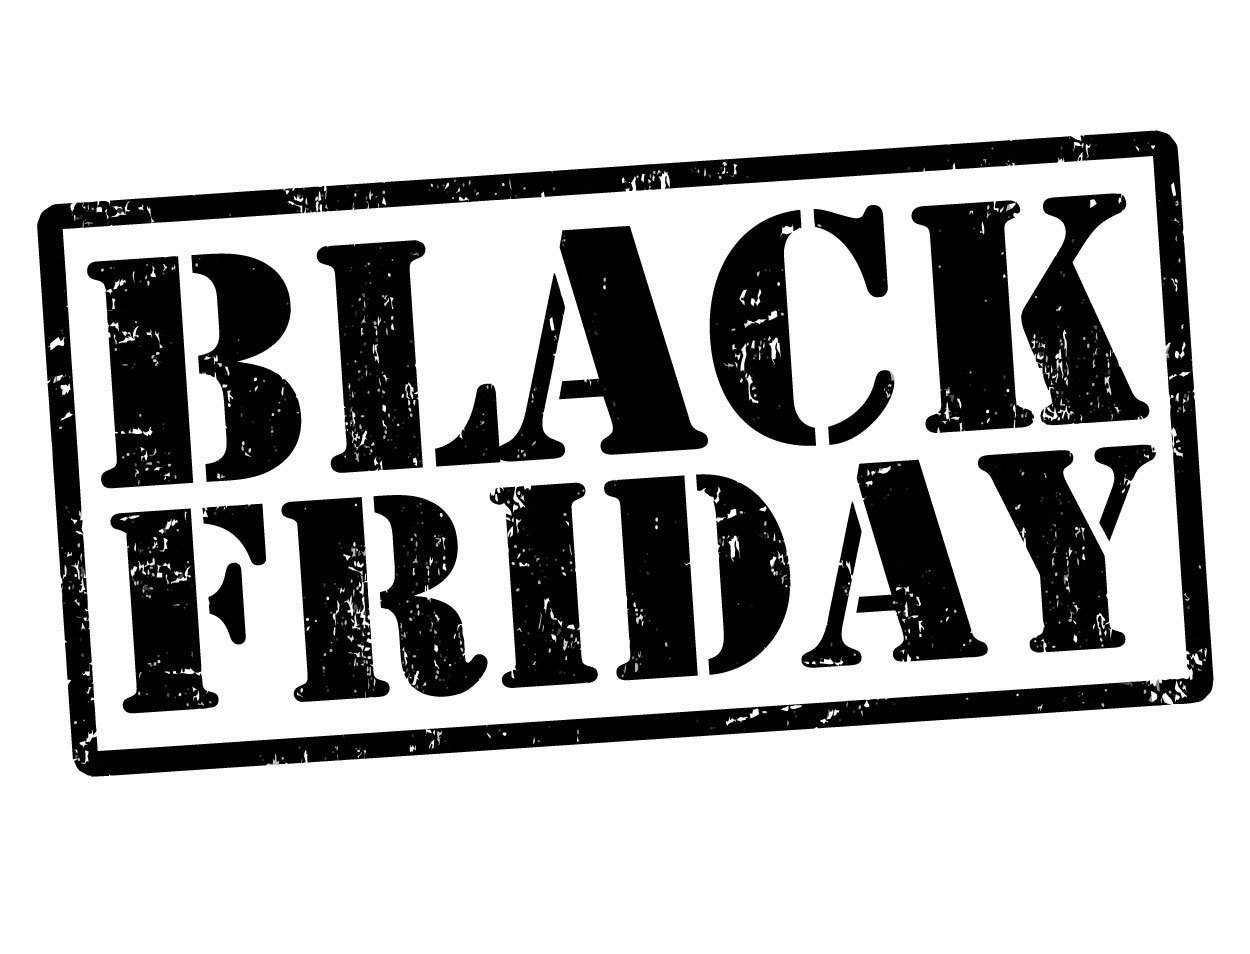 Fifth of Hungarians interested in Black Friday sales